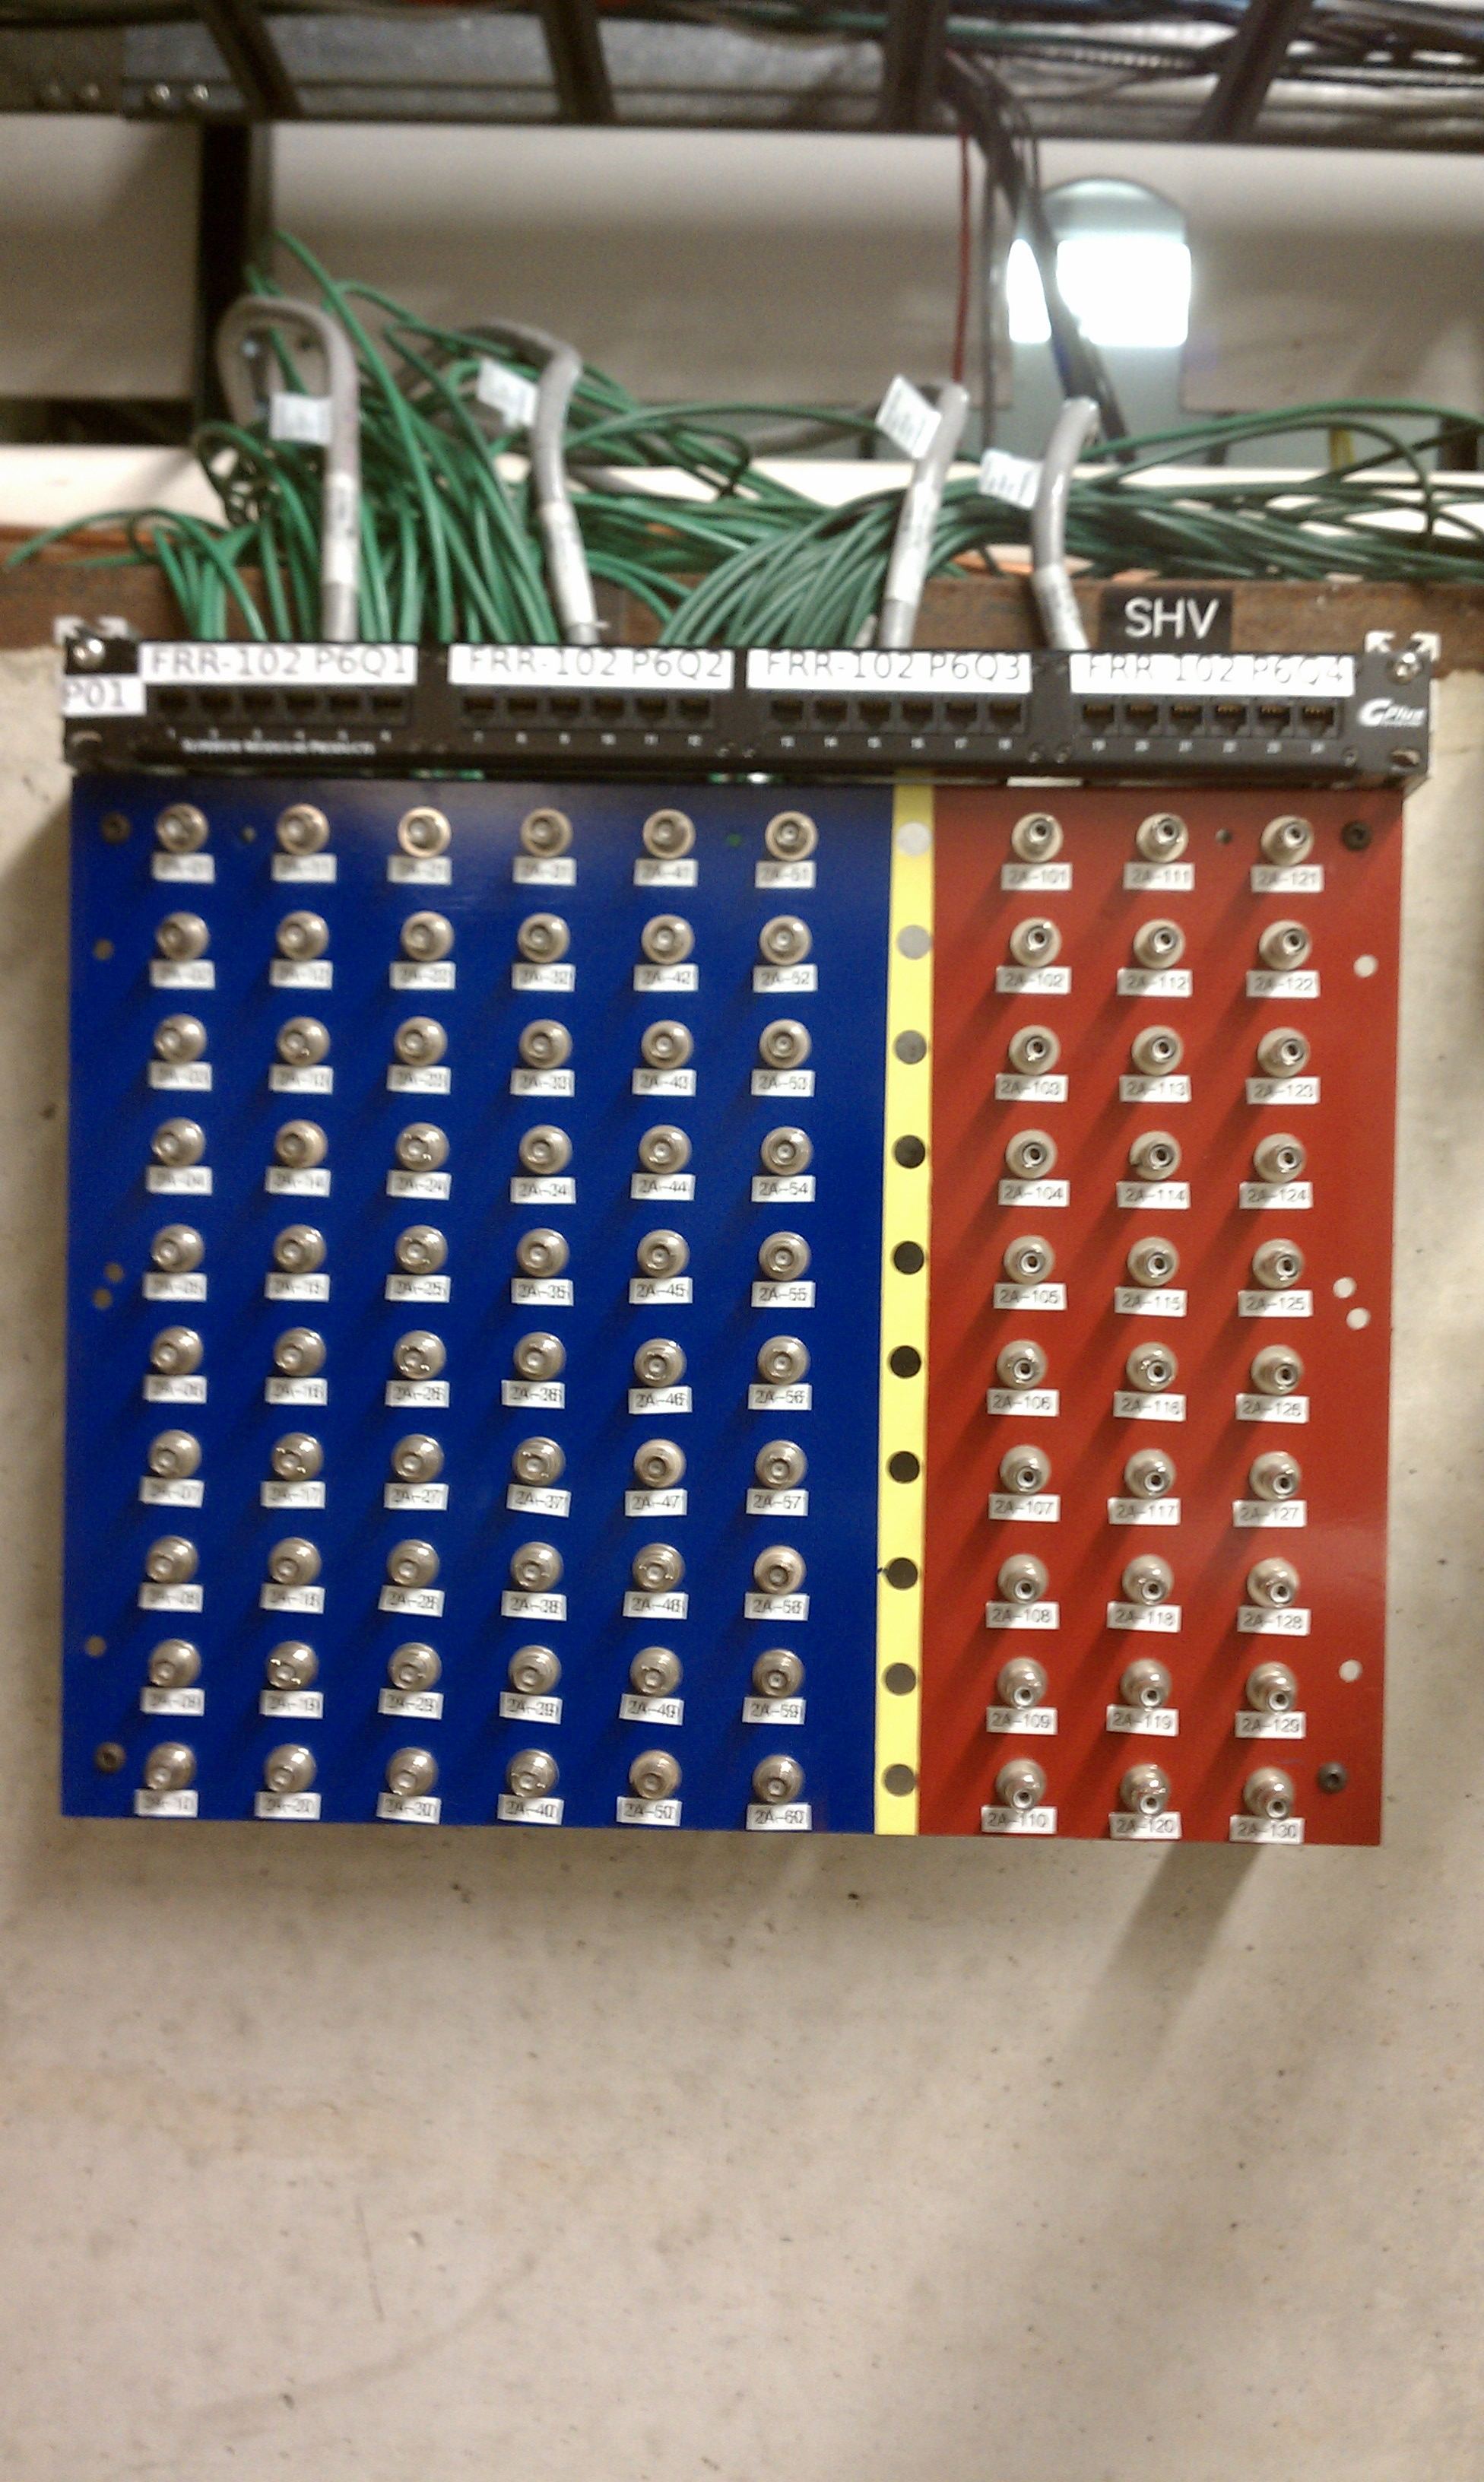 PatchPanel IMAG1456